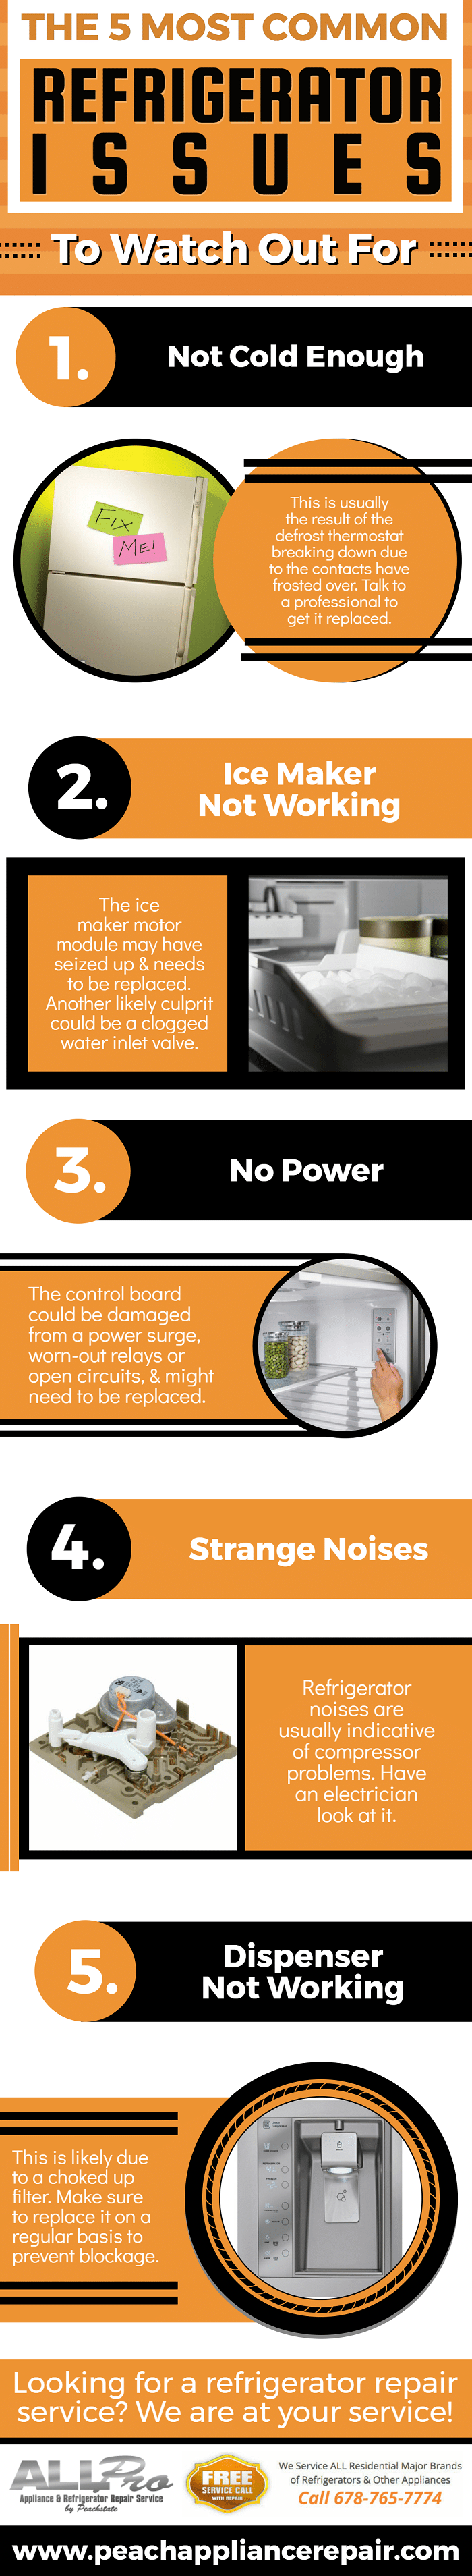 The 5 Most Common Refrigerator Issues to watch out for infographic